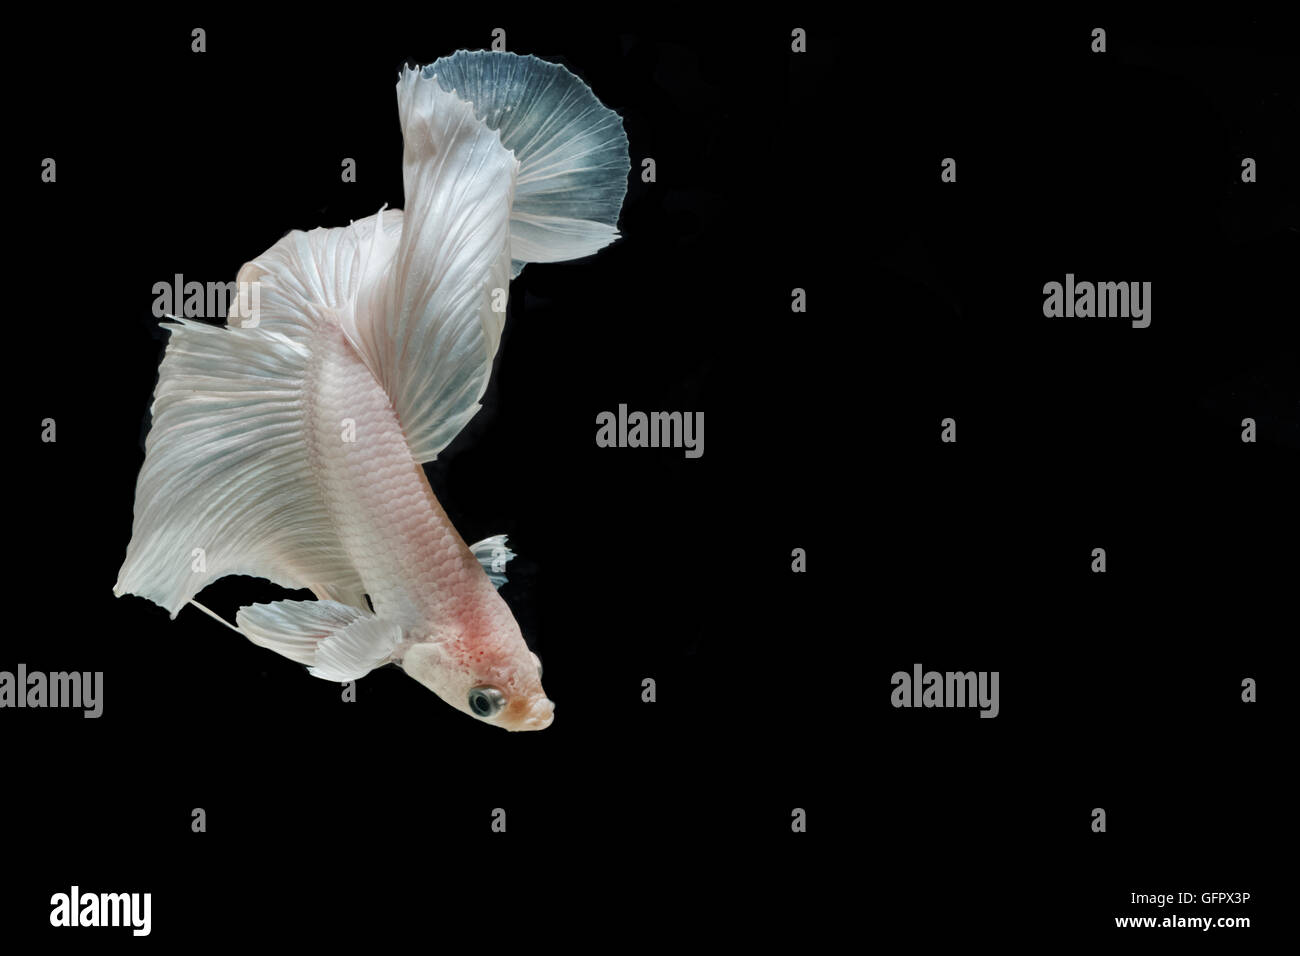 Moment of betta fish, siamese fighting fish isolated on black background Stock Photo